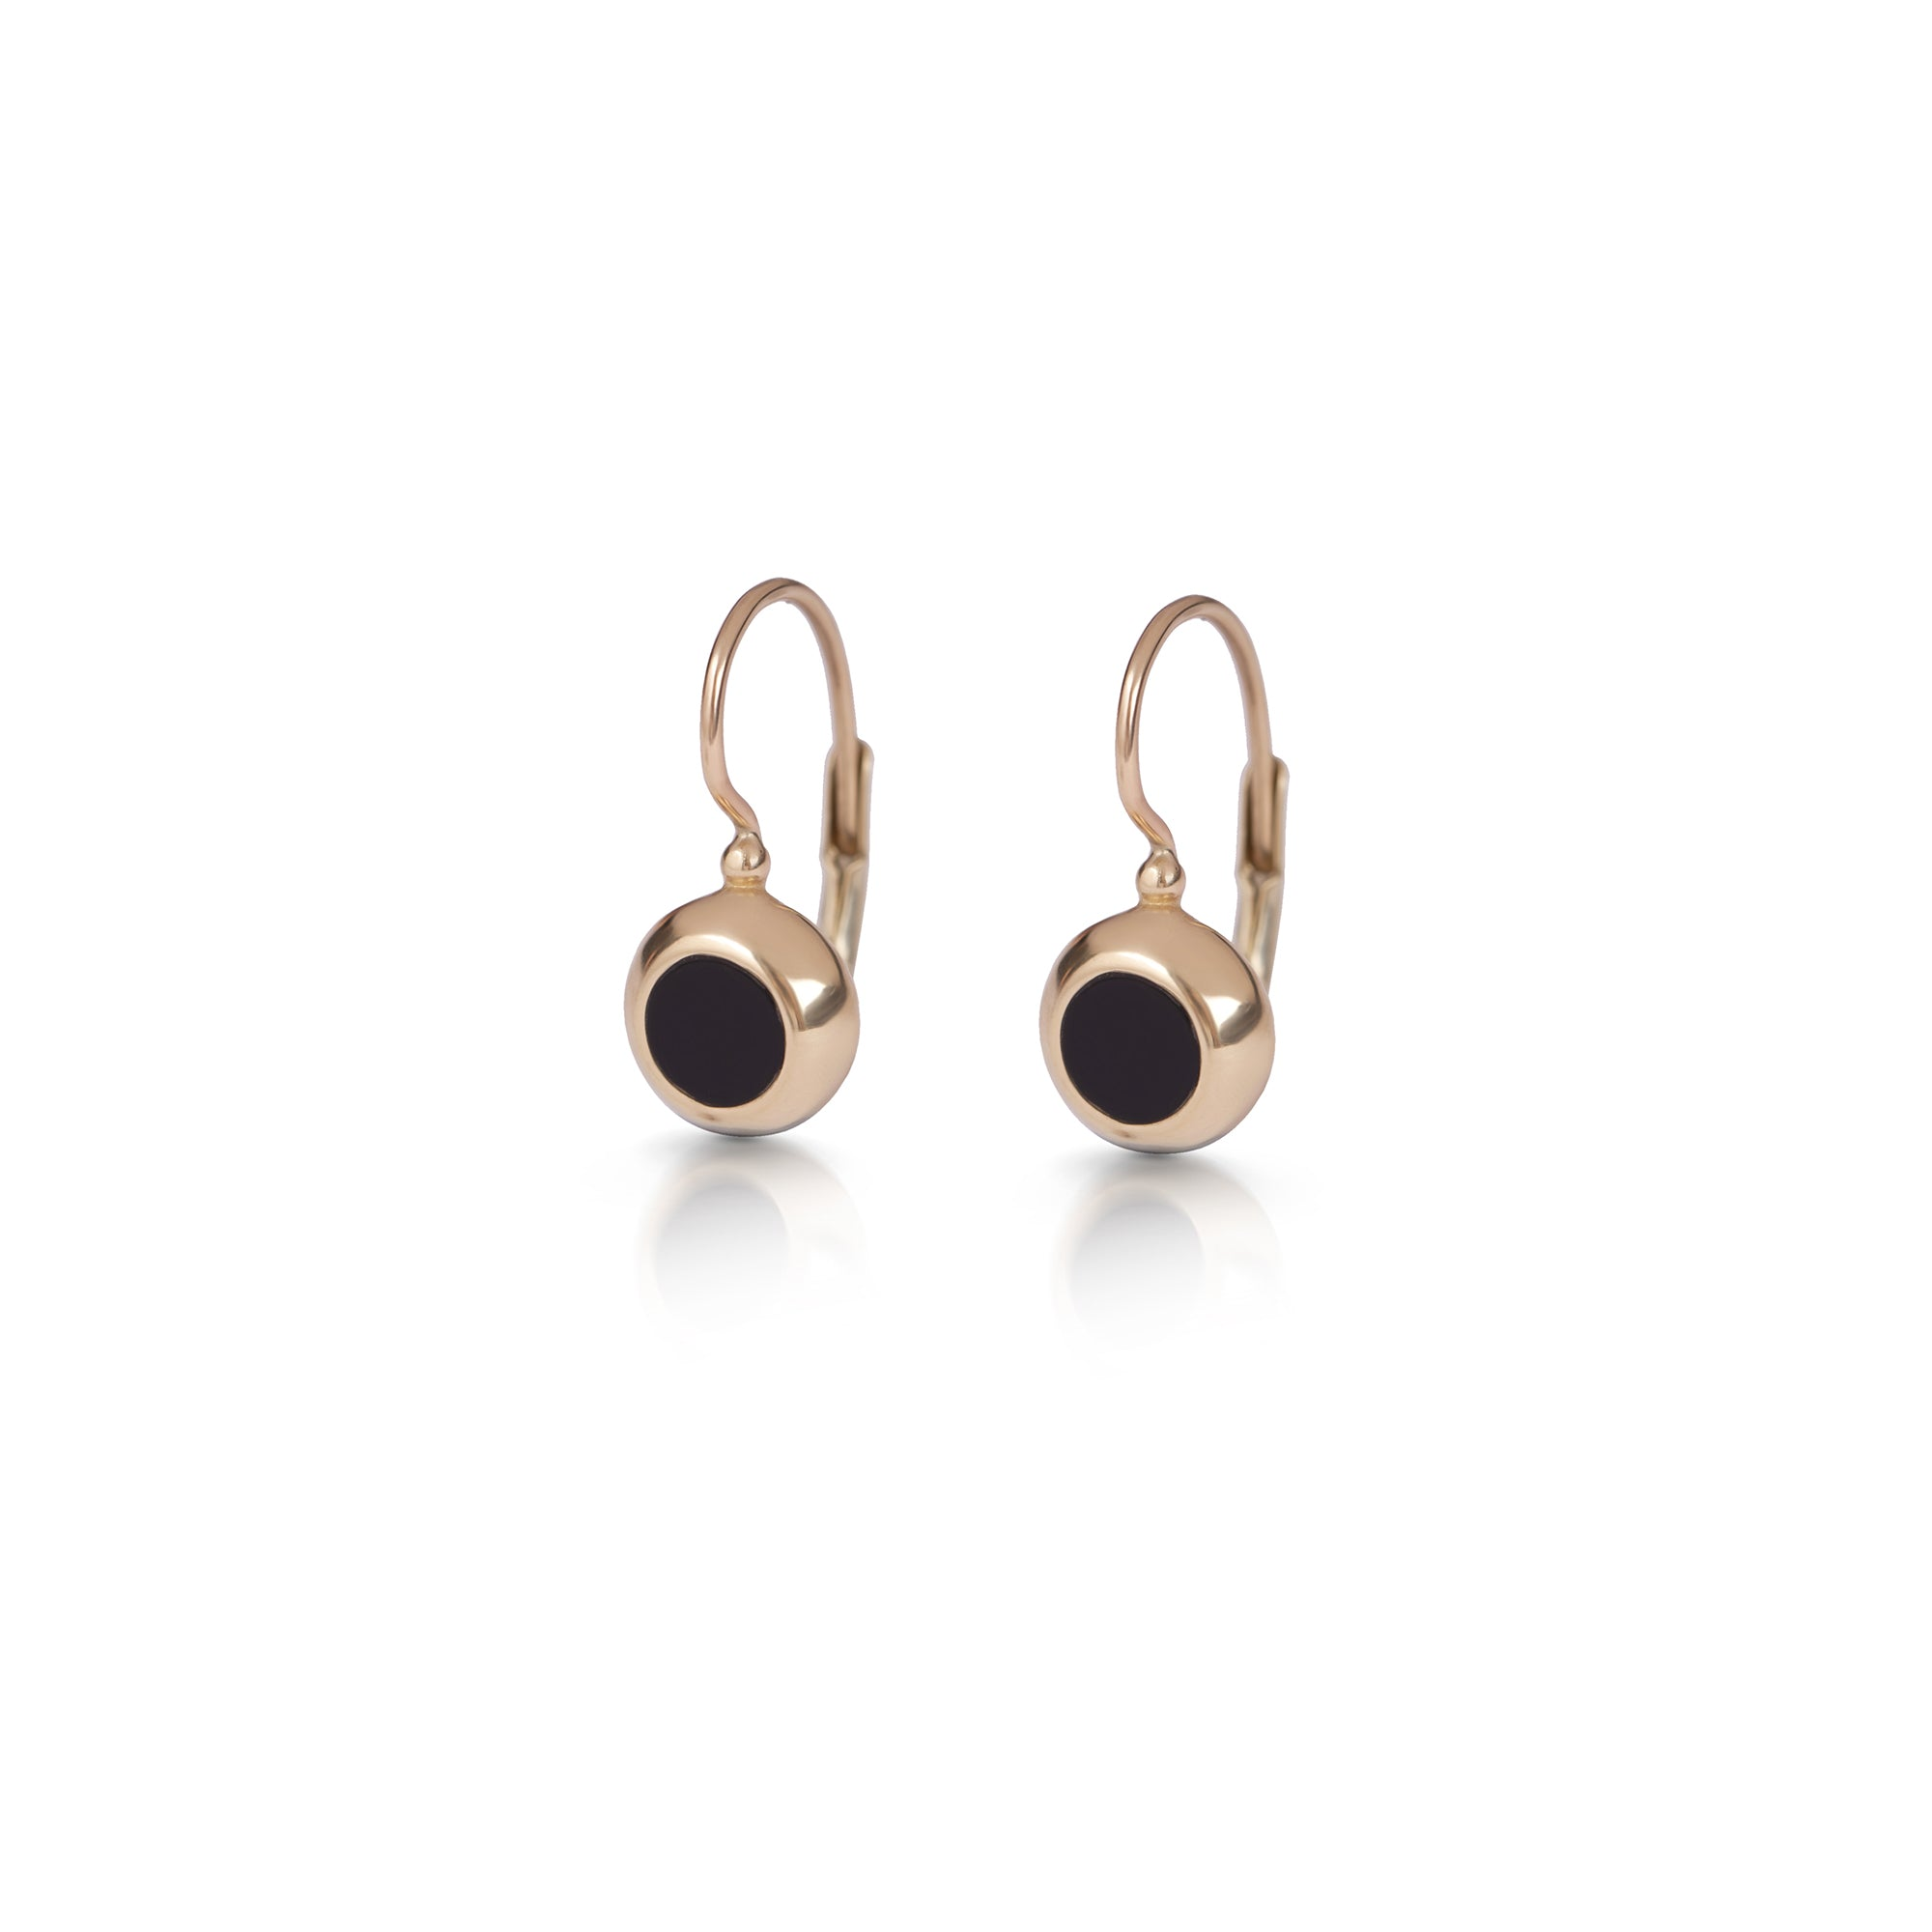 14k Hanging gold earrings with small stone frame